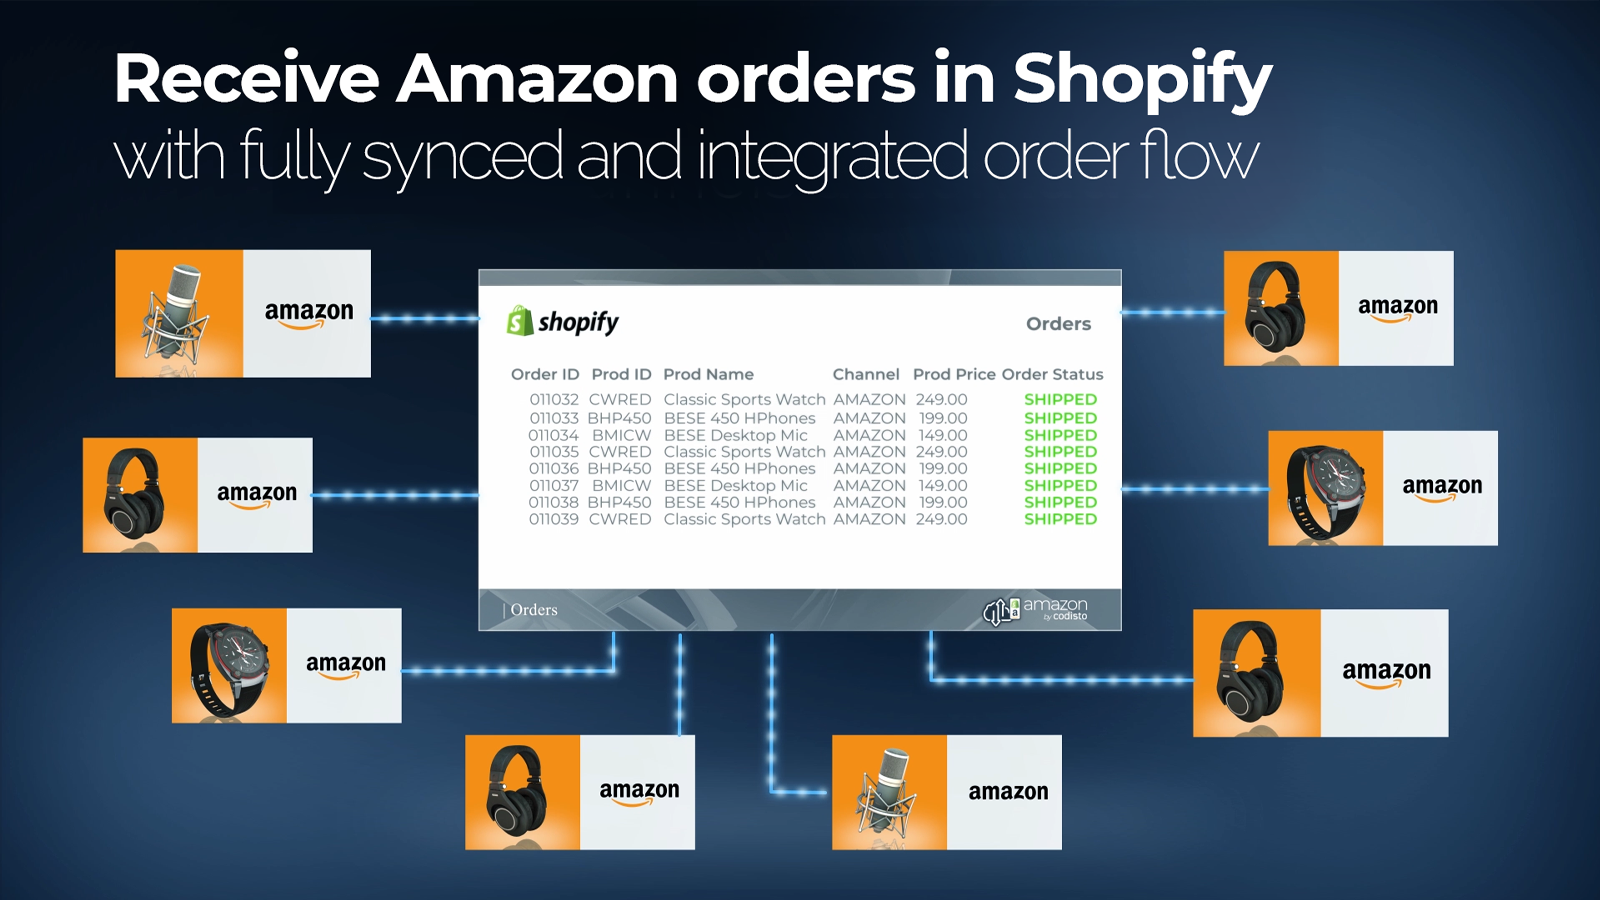 Receive Amazon orders in Shopify